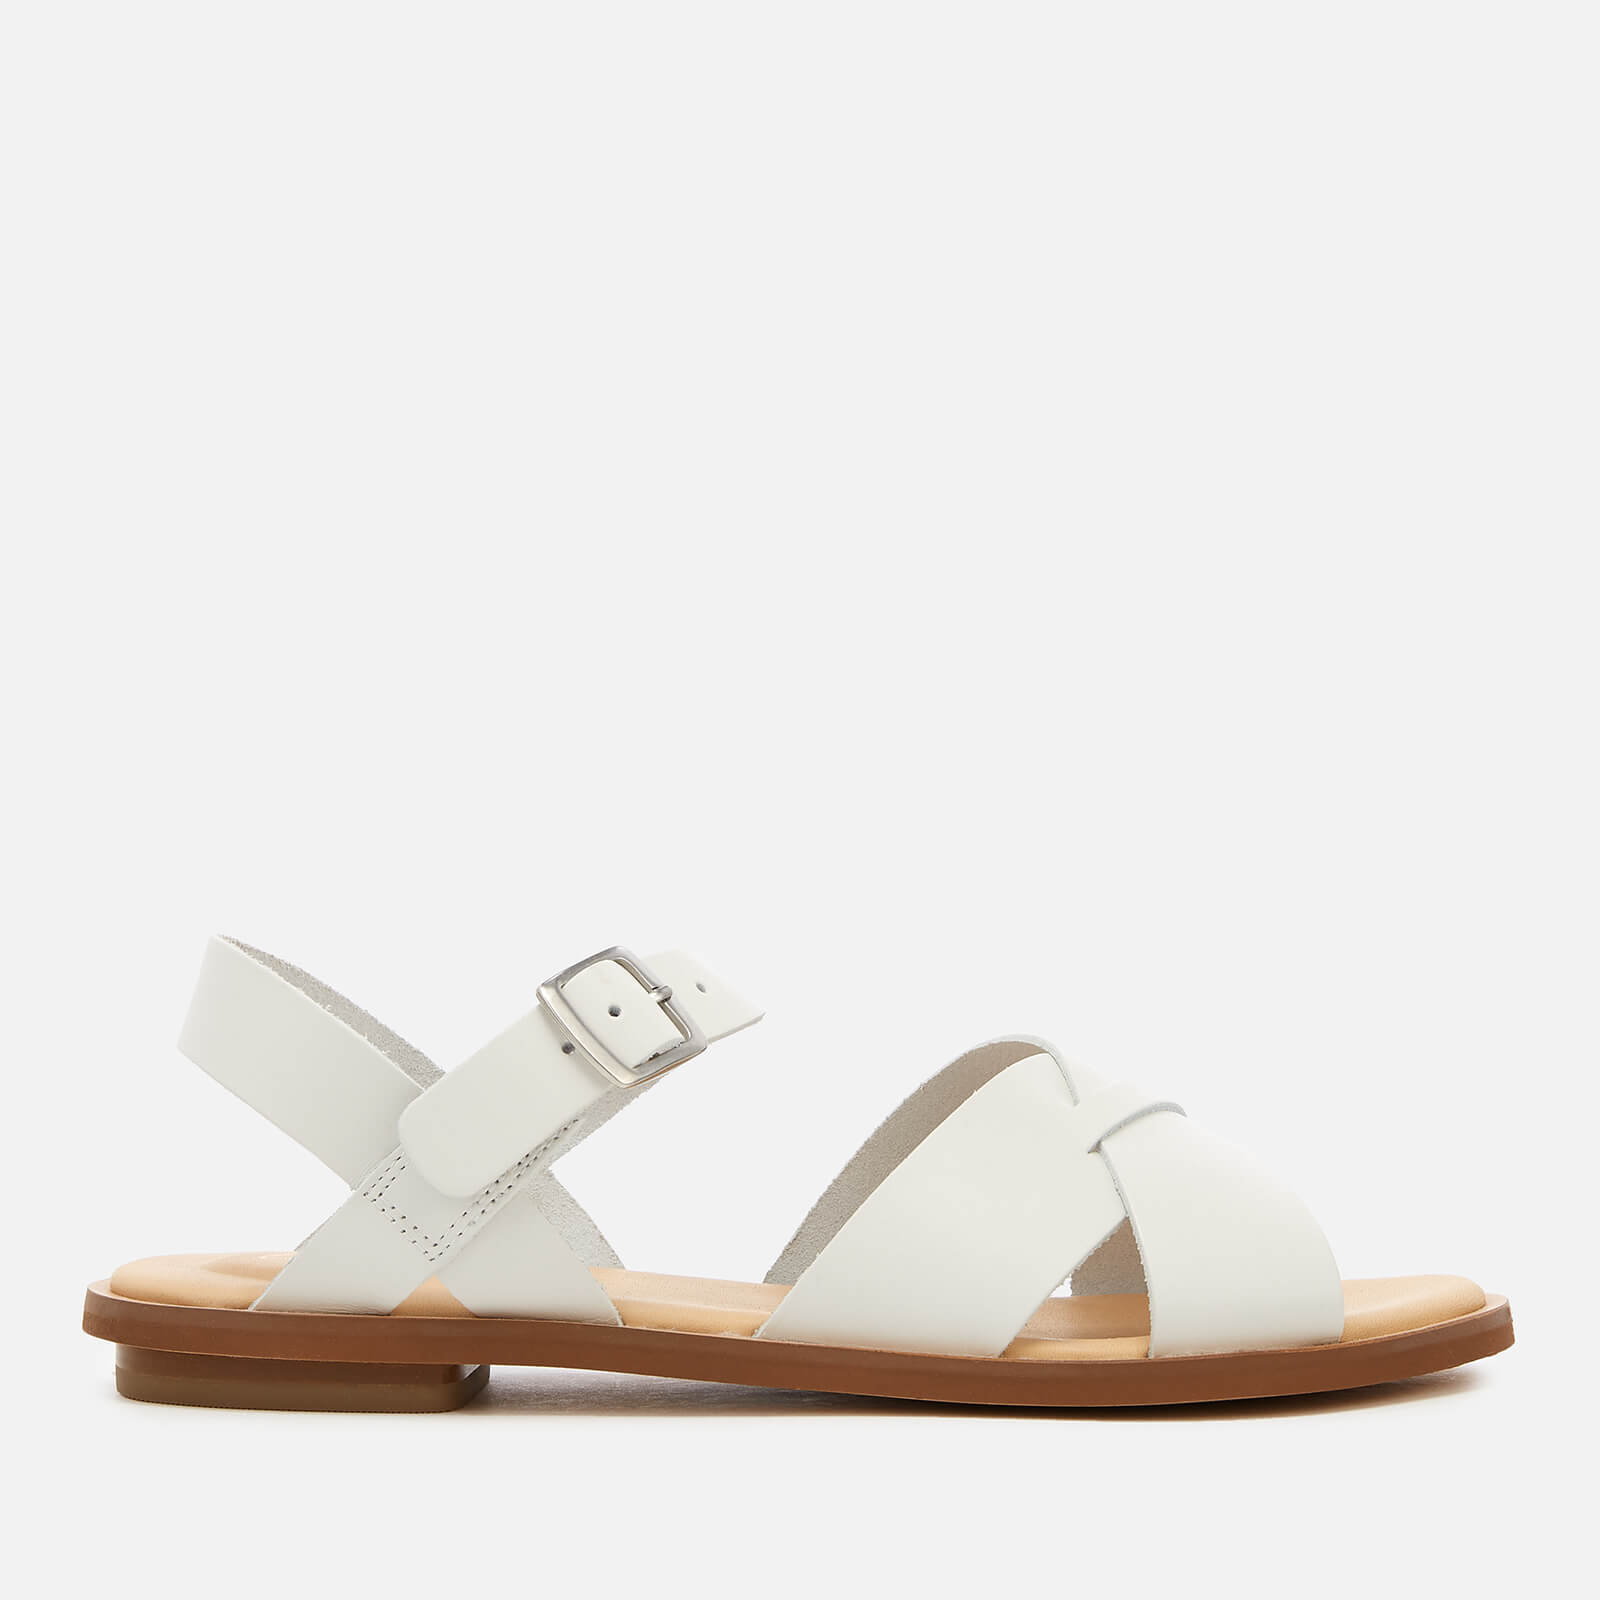 288caf579 Clarks Women s Willow Gild Leather Sandals - White Womens Accessories